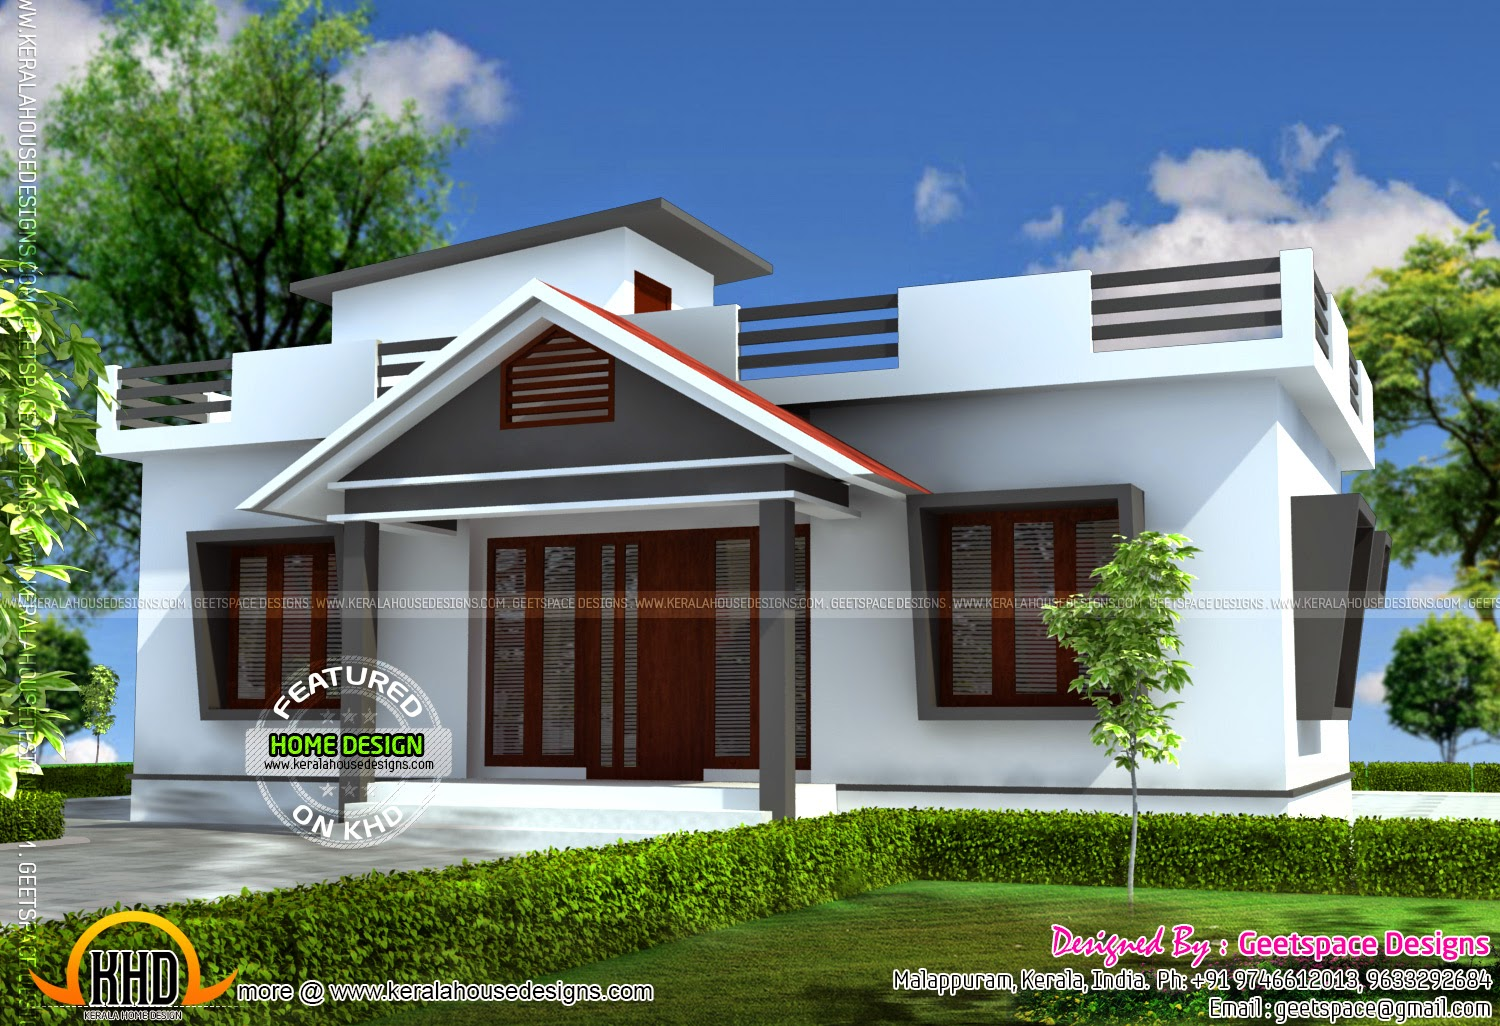 Small house in 903 square feet kerala home design and floor plans - House to home designs ...